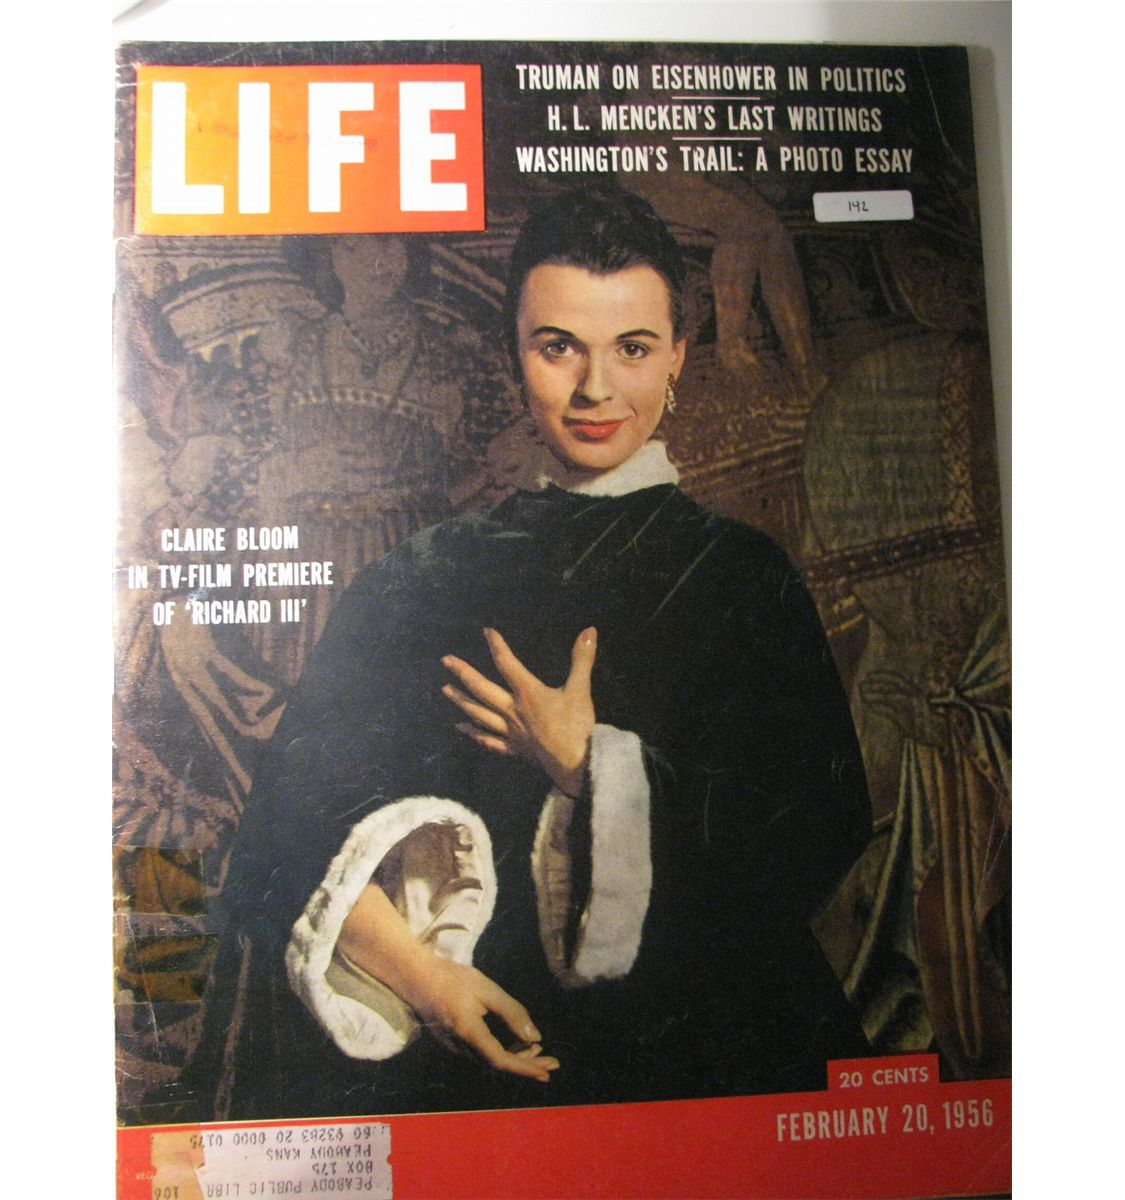 vintage 1956 life magazine cover clair bloom in tv film vintage 1956 life magazine cover clair bloom in tv film premier of richard iii